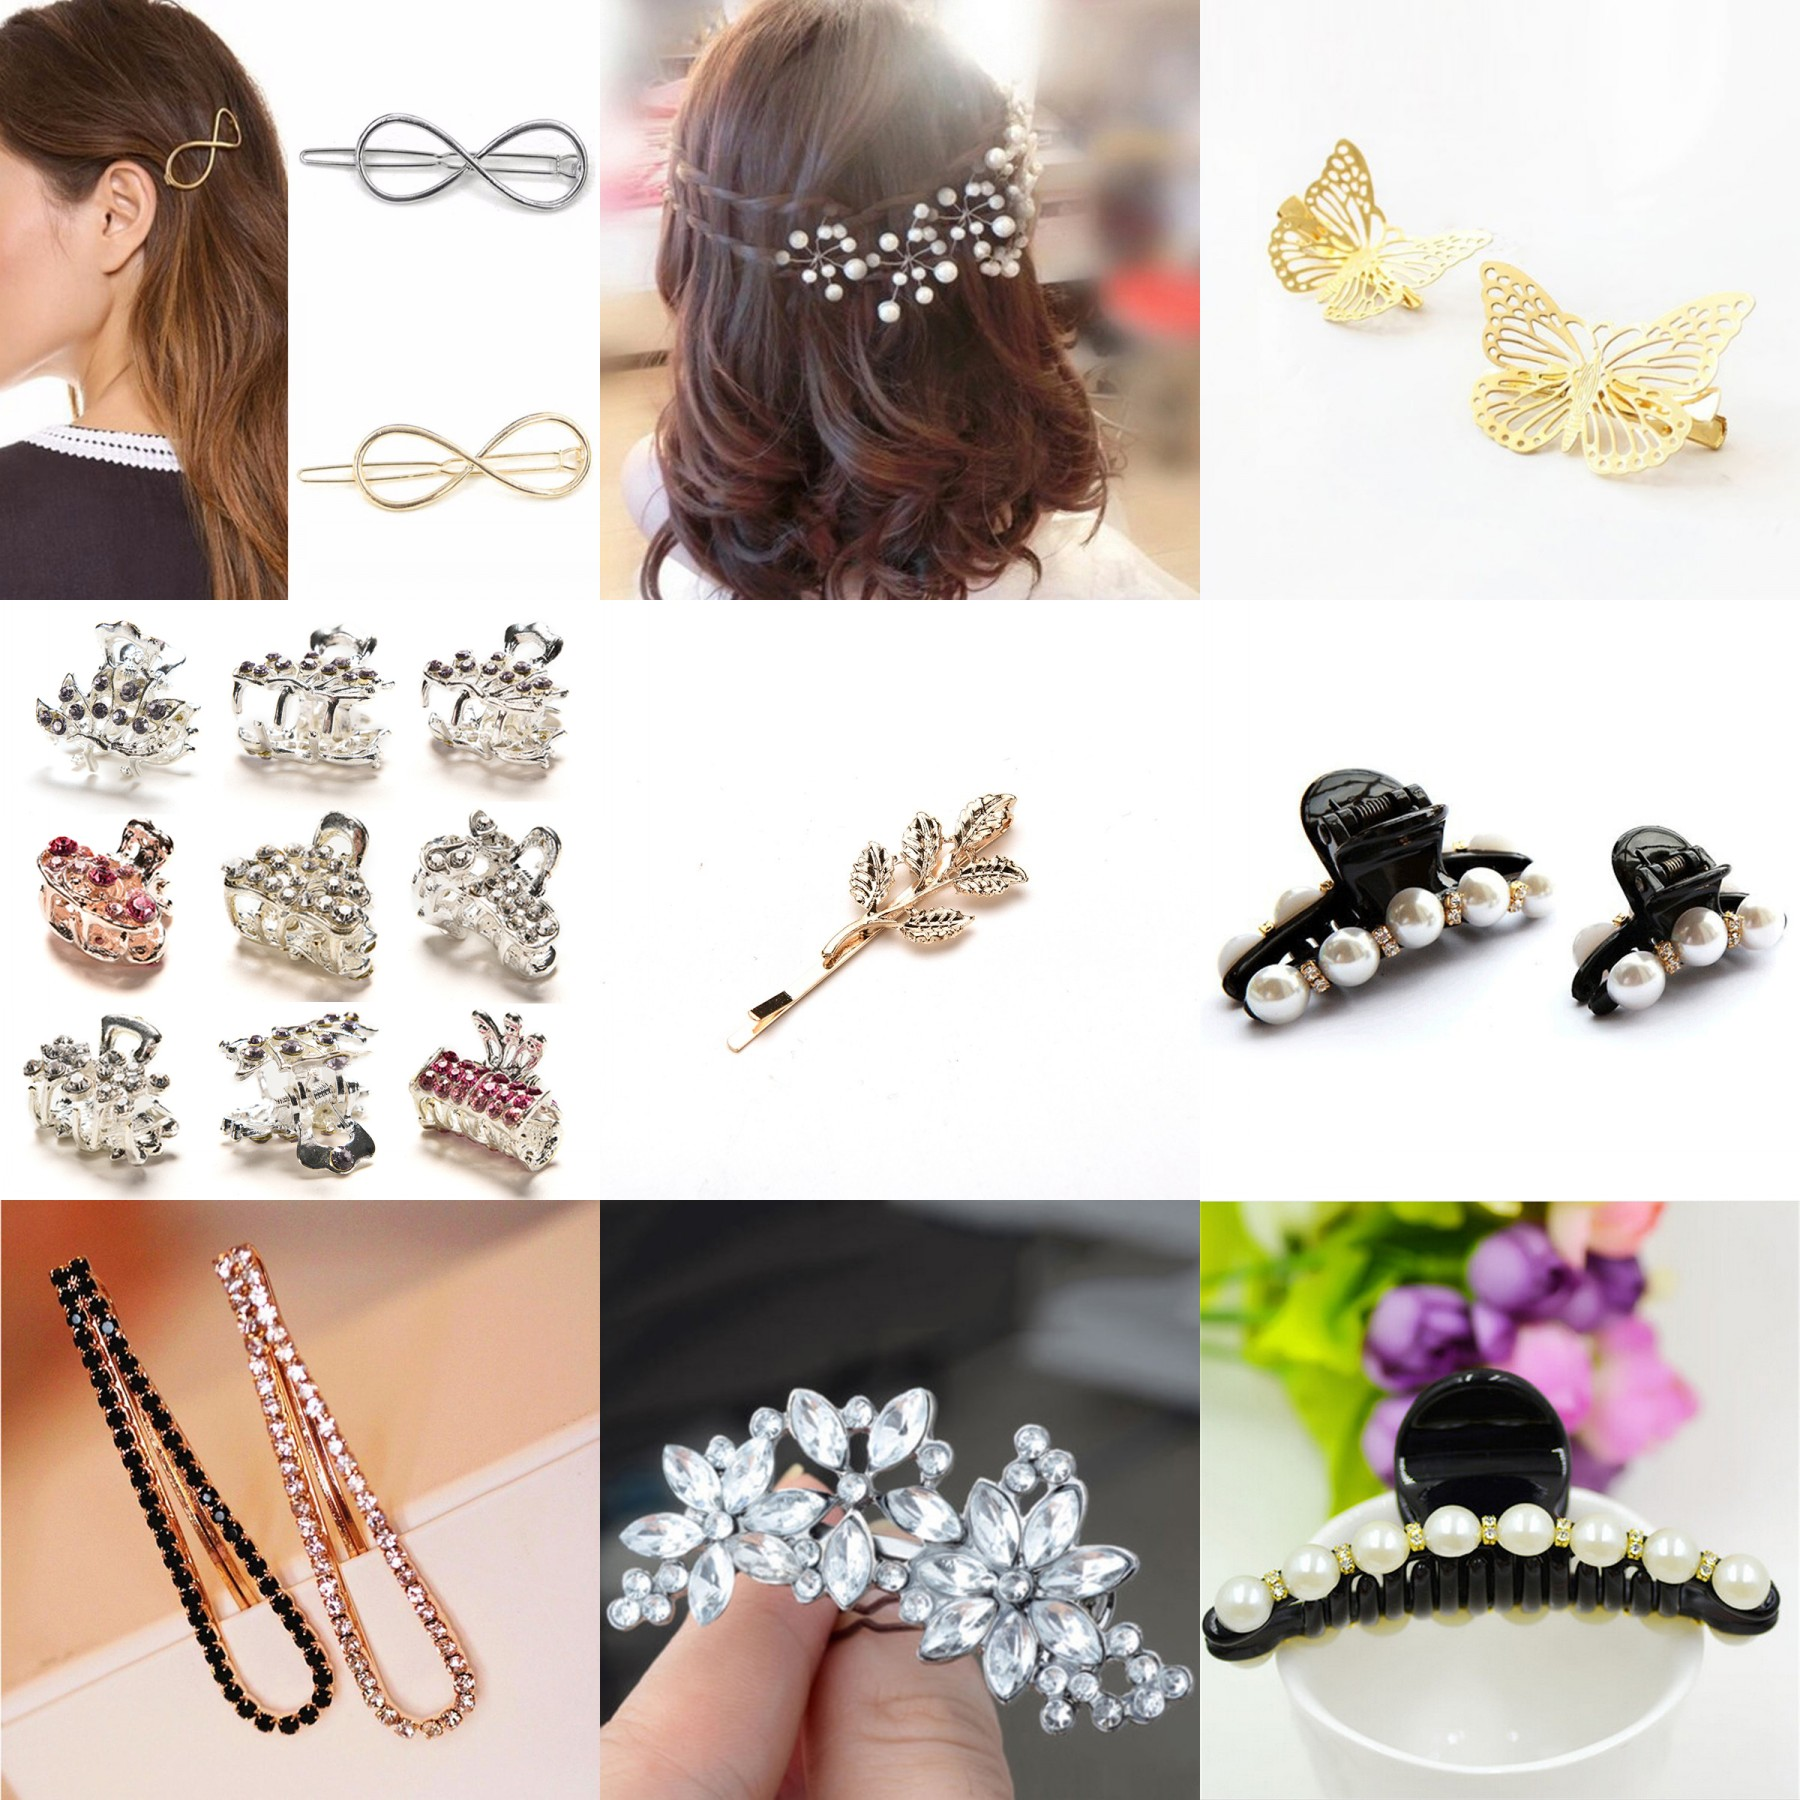 Fashion Metal Antler Branch Barrettes Bobby Hair Clips Pin Claws Styling Tool Women Girls Gold/Silver Mini Butterfly Hairpin